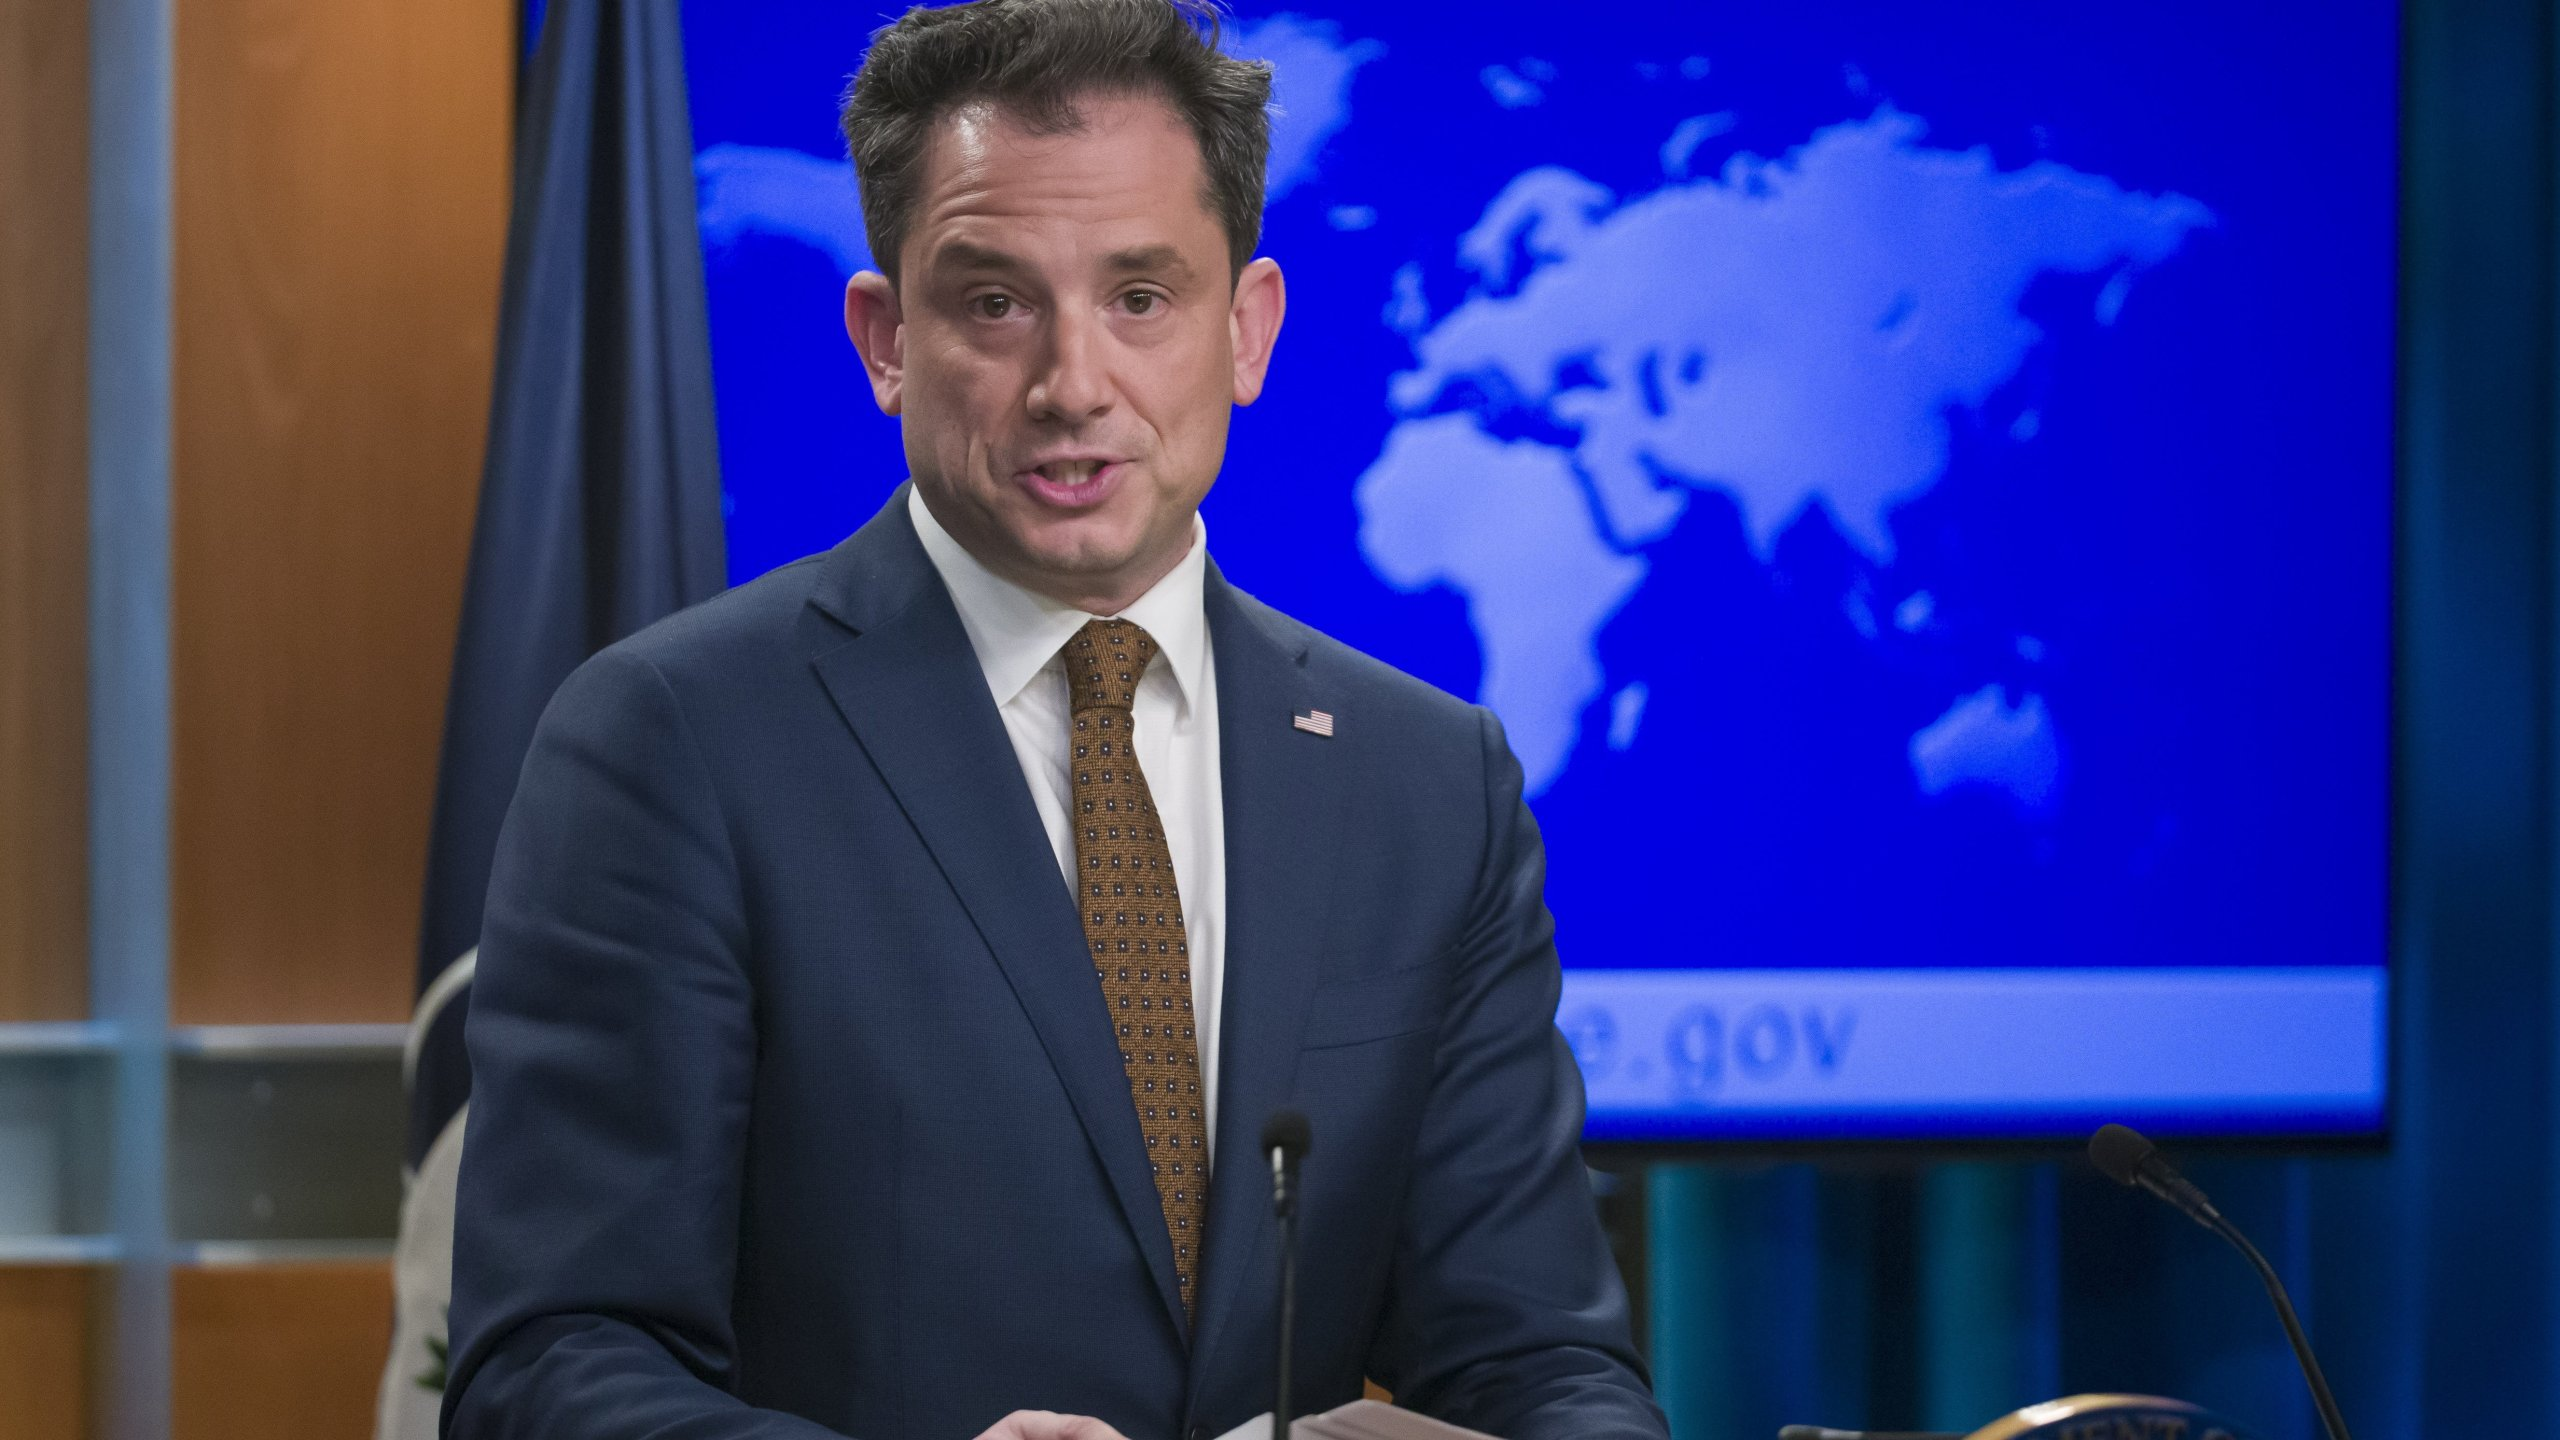 State Department Deputy Spokesperson Robert Palladino speaks as the State Department broke its silence on Thursday, holding its first public press briefing of 2019. (Credit: CNN)